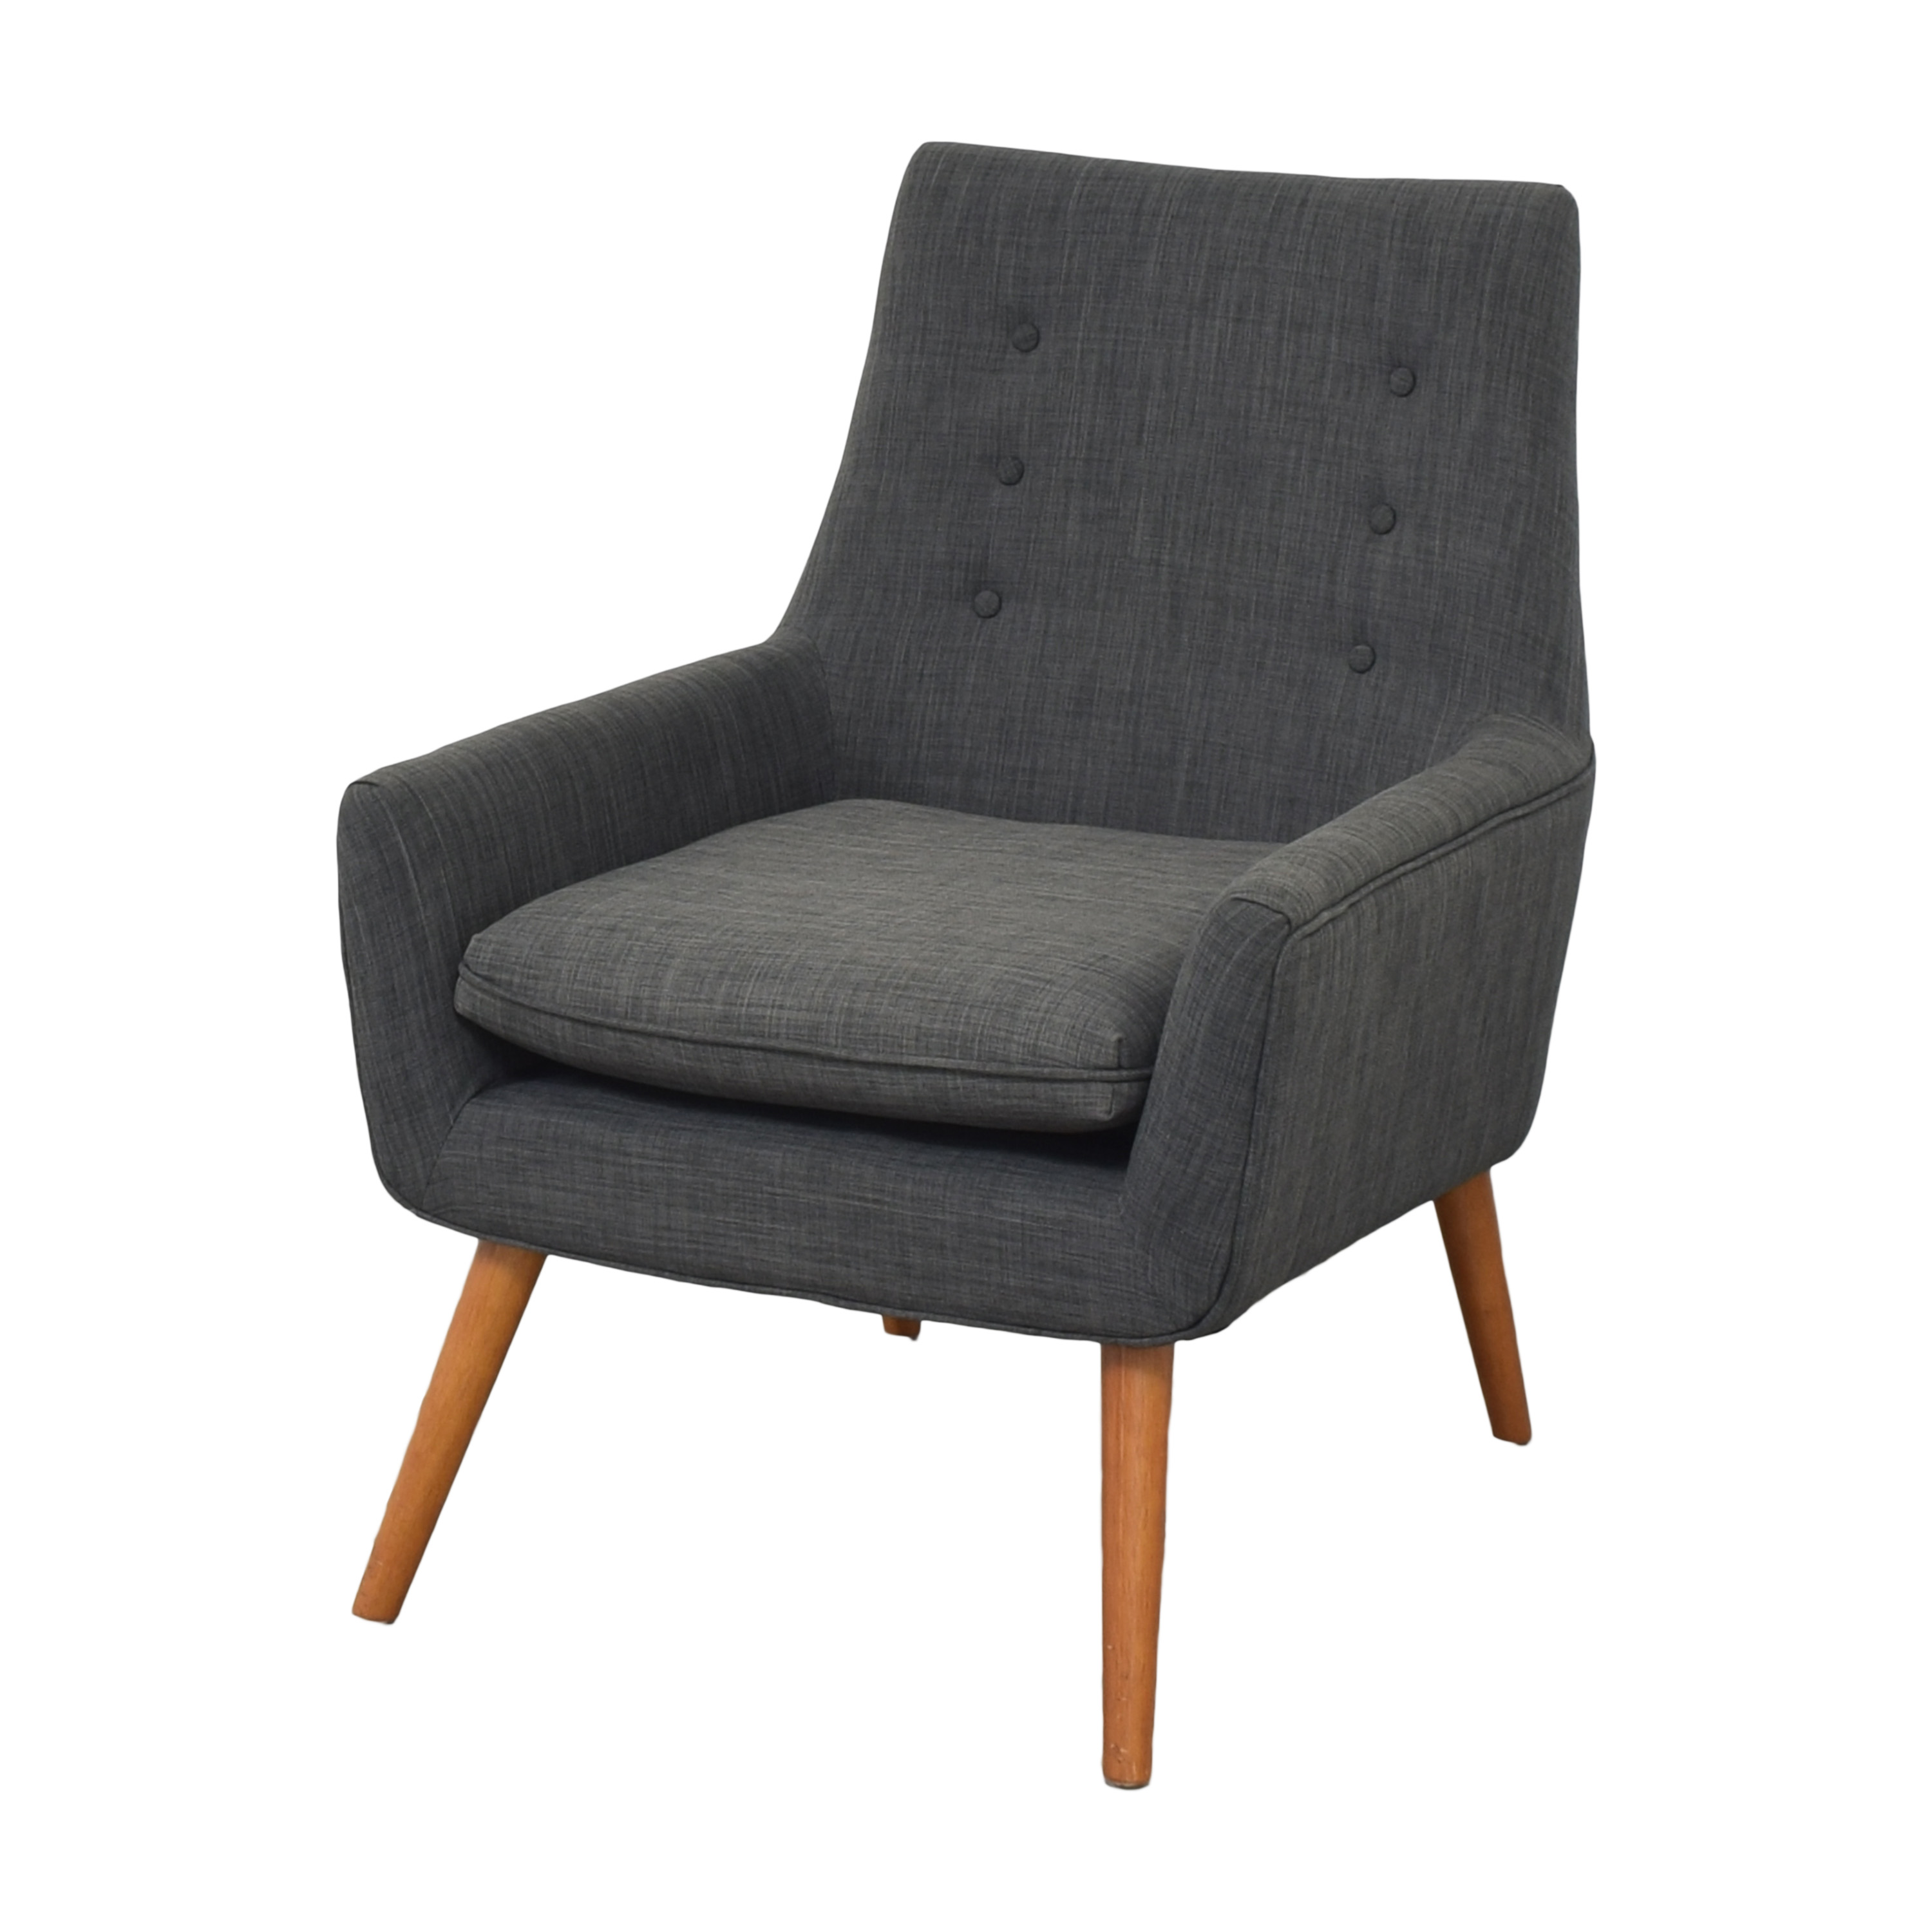 Adesso Adesso Modern Accent Chair  Chairs